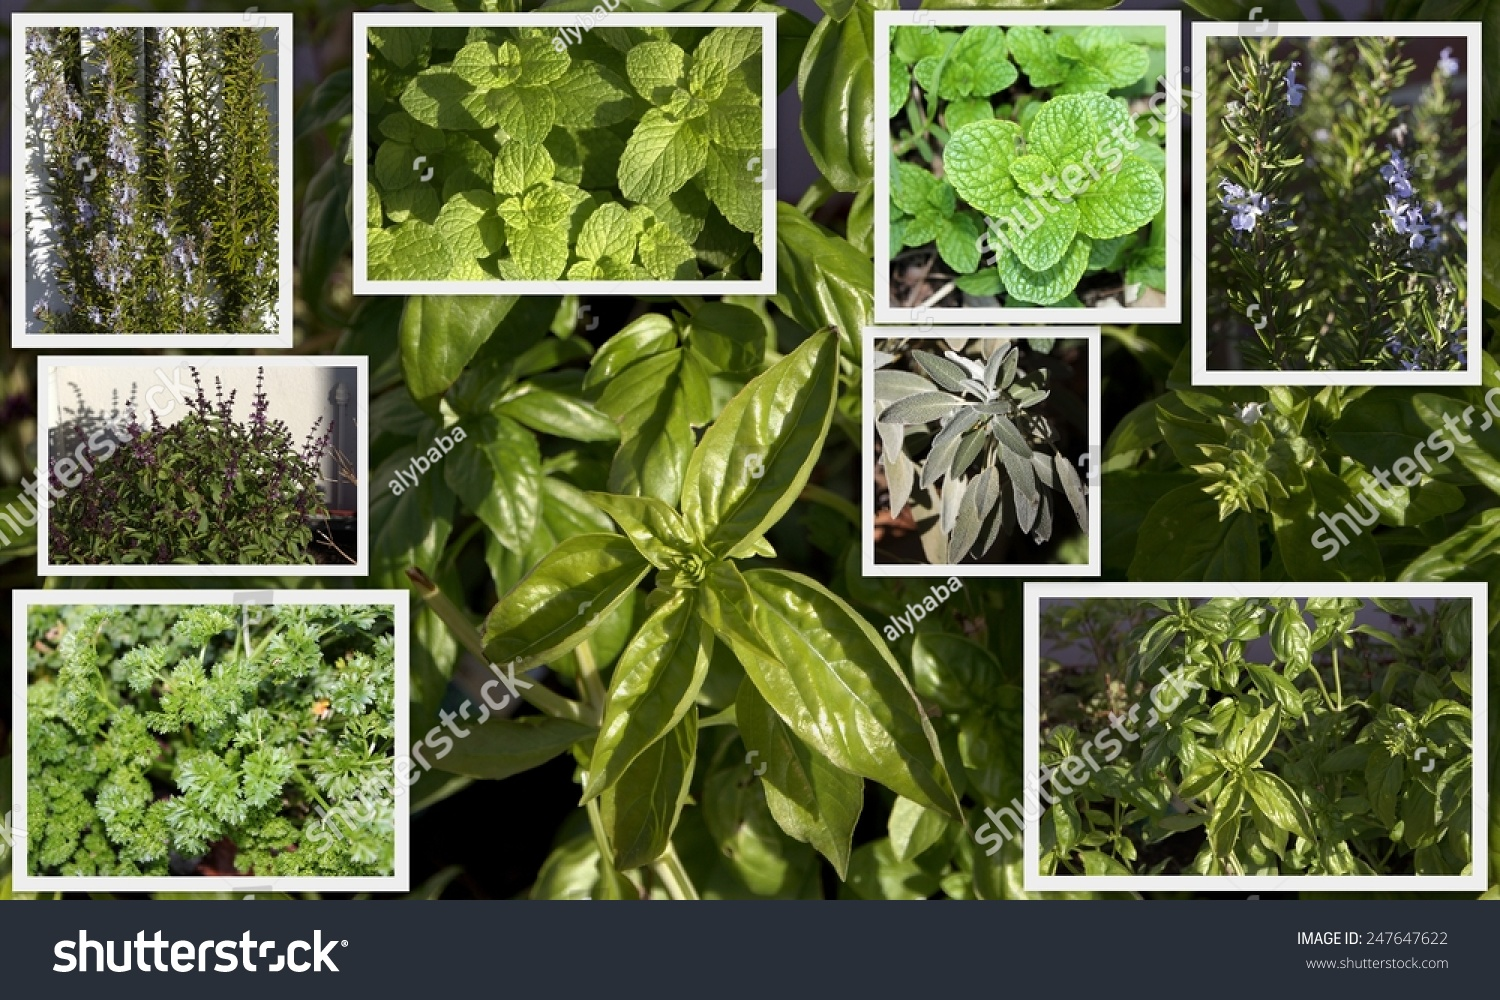 What are some commonly used herbs?